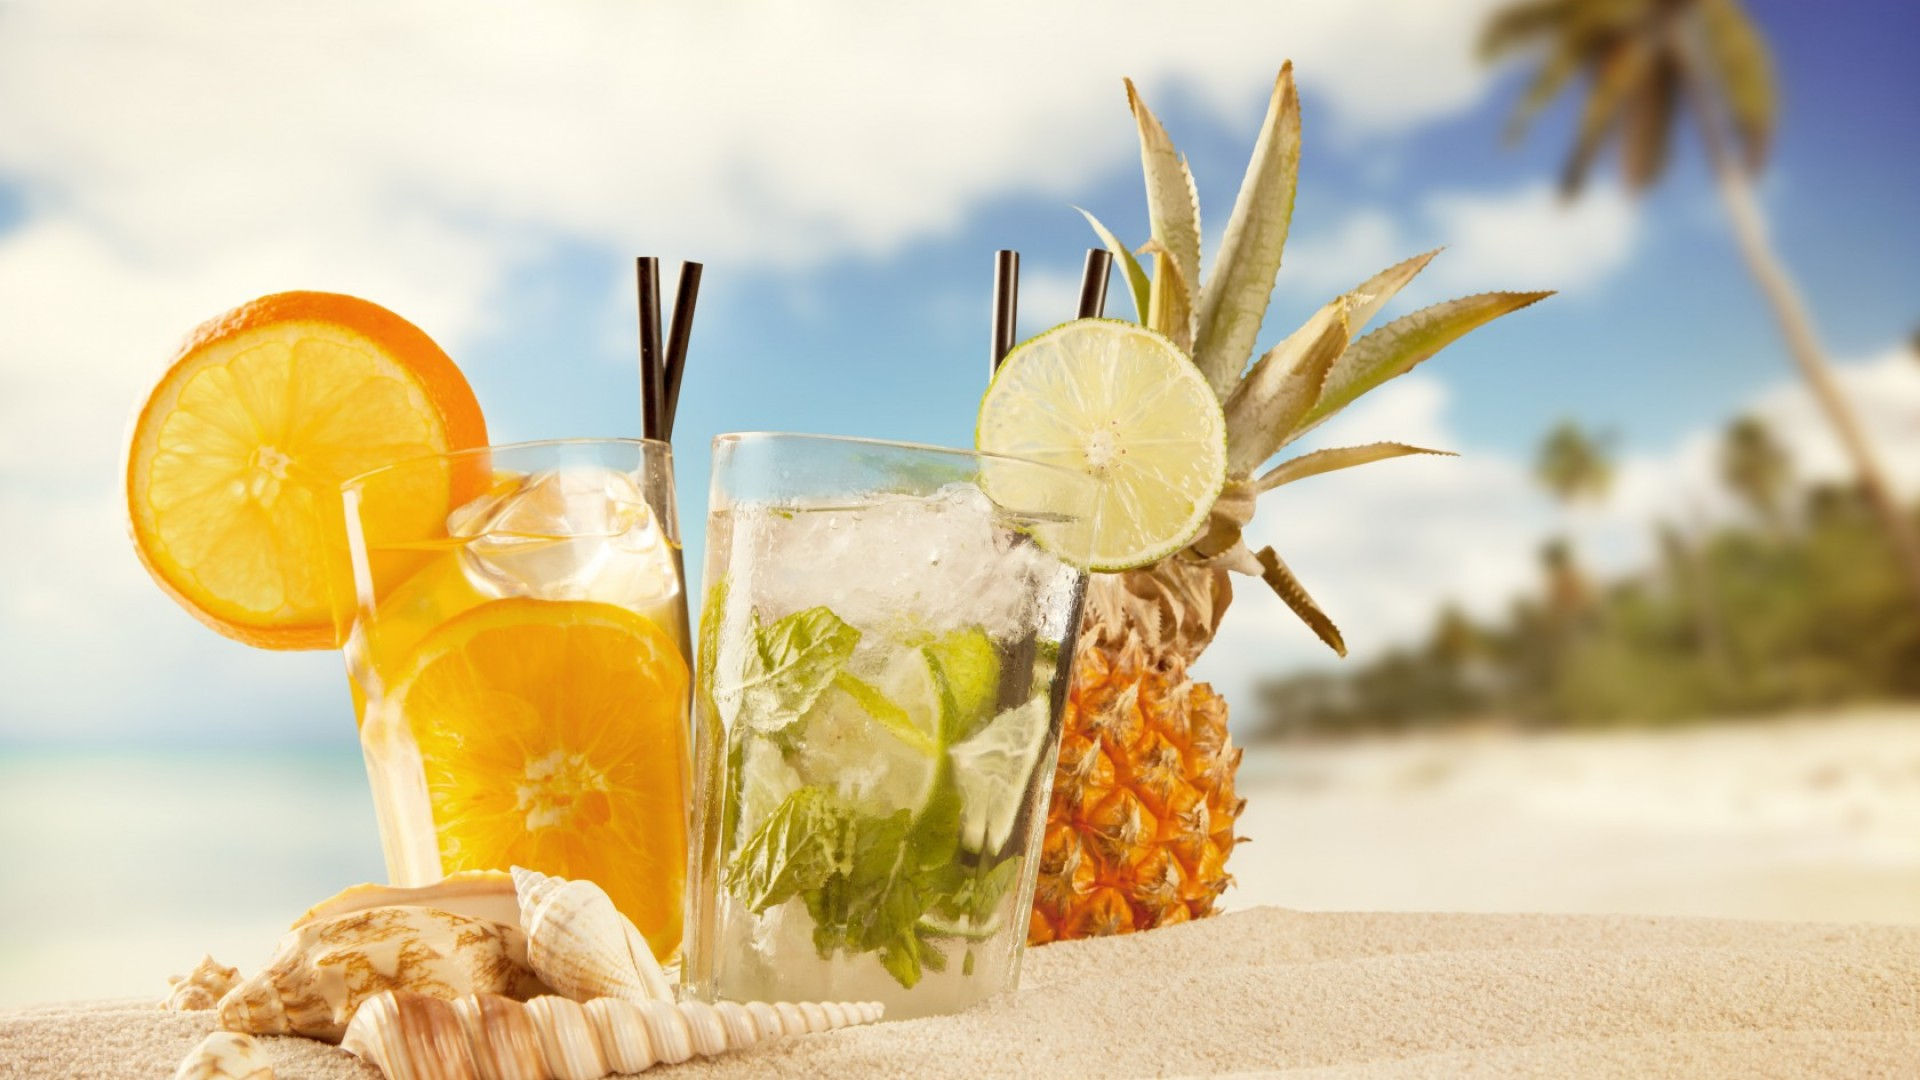 cocktails, ice, fruit, orange, pineapple, beach, summer, sand, shells, sun (horizontal)